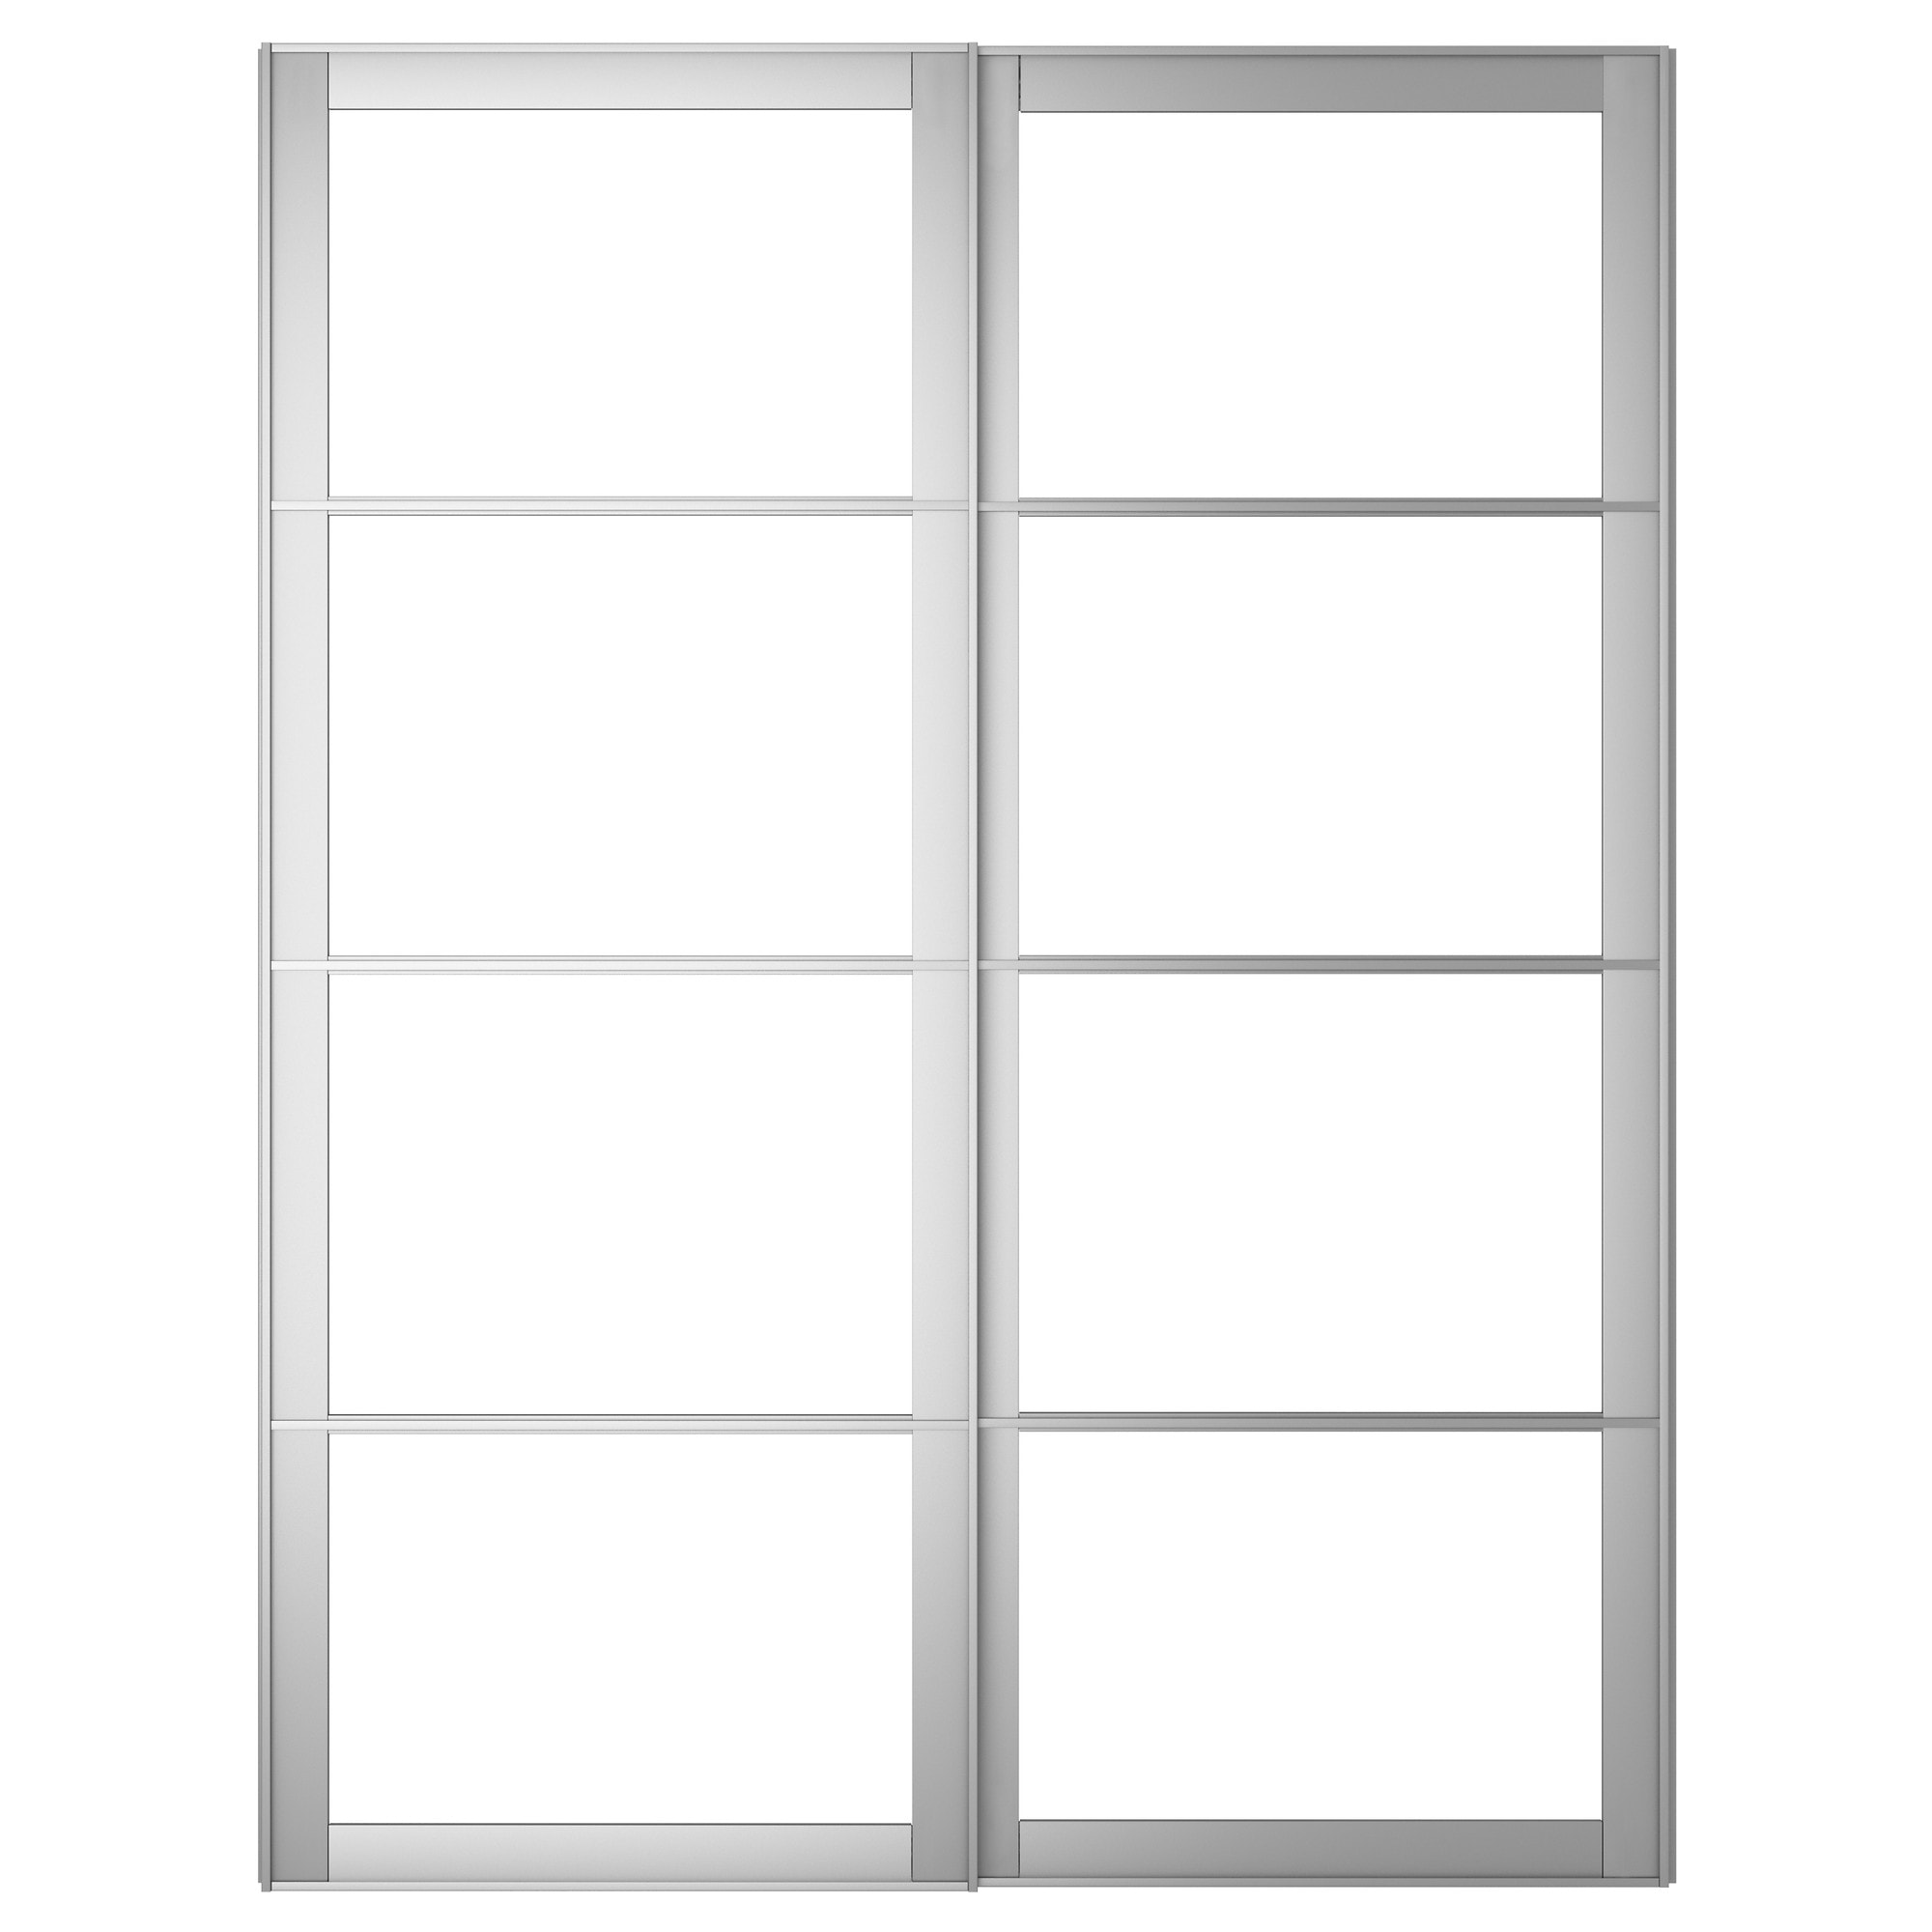 sc 1 st  Ikea & PAX Pair of sliding door frames \u0026 rail - 78 3/4x92 7/8 \